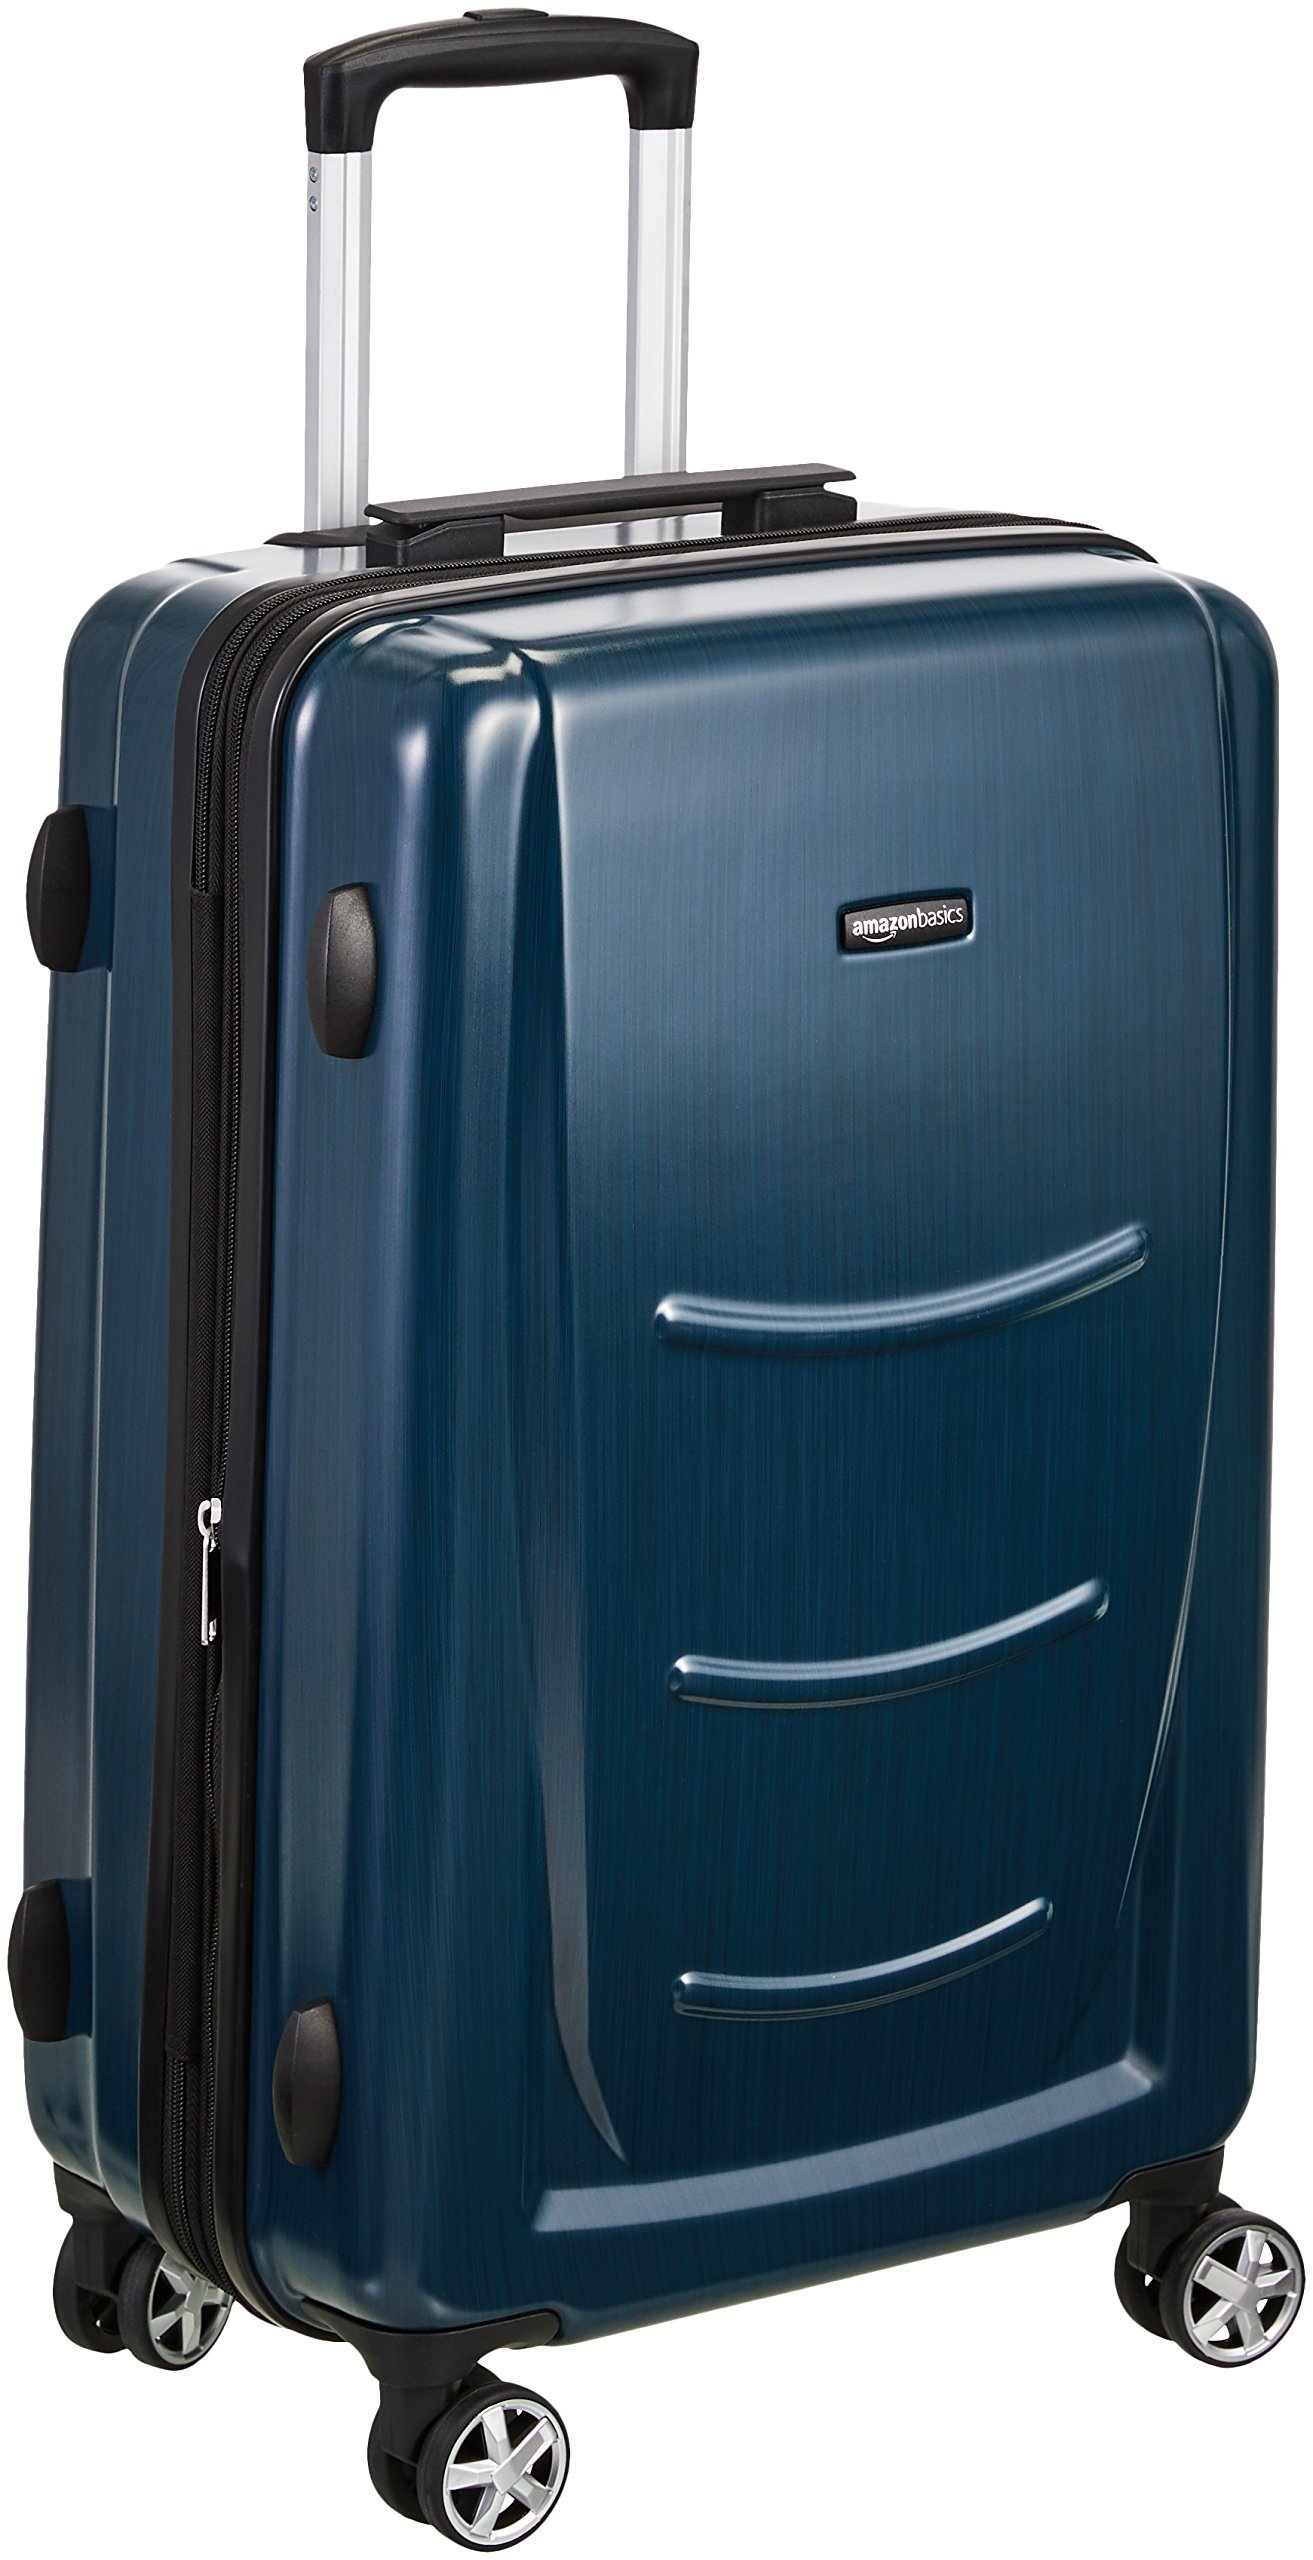 AmazonBasics Hard Shell Carry On Spinner Suitcase Luggage - 28 Inch, Navy Blue by AmazonBasics